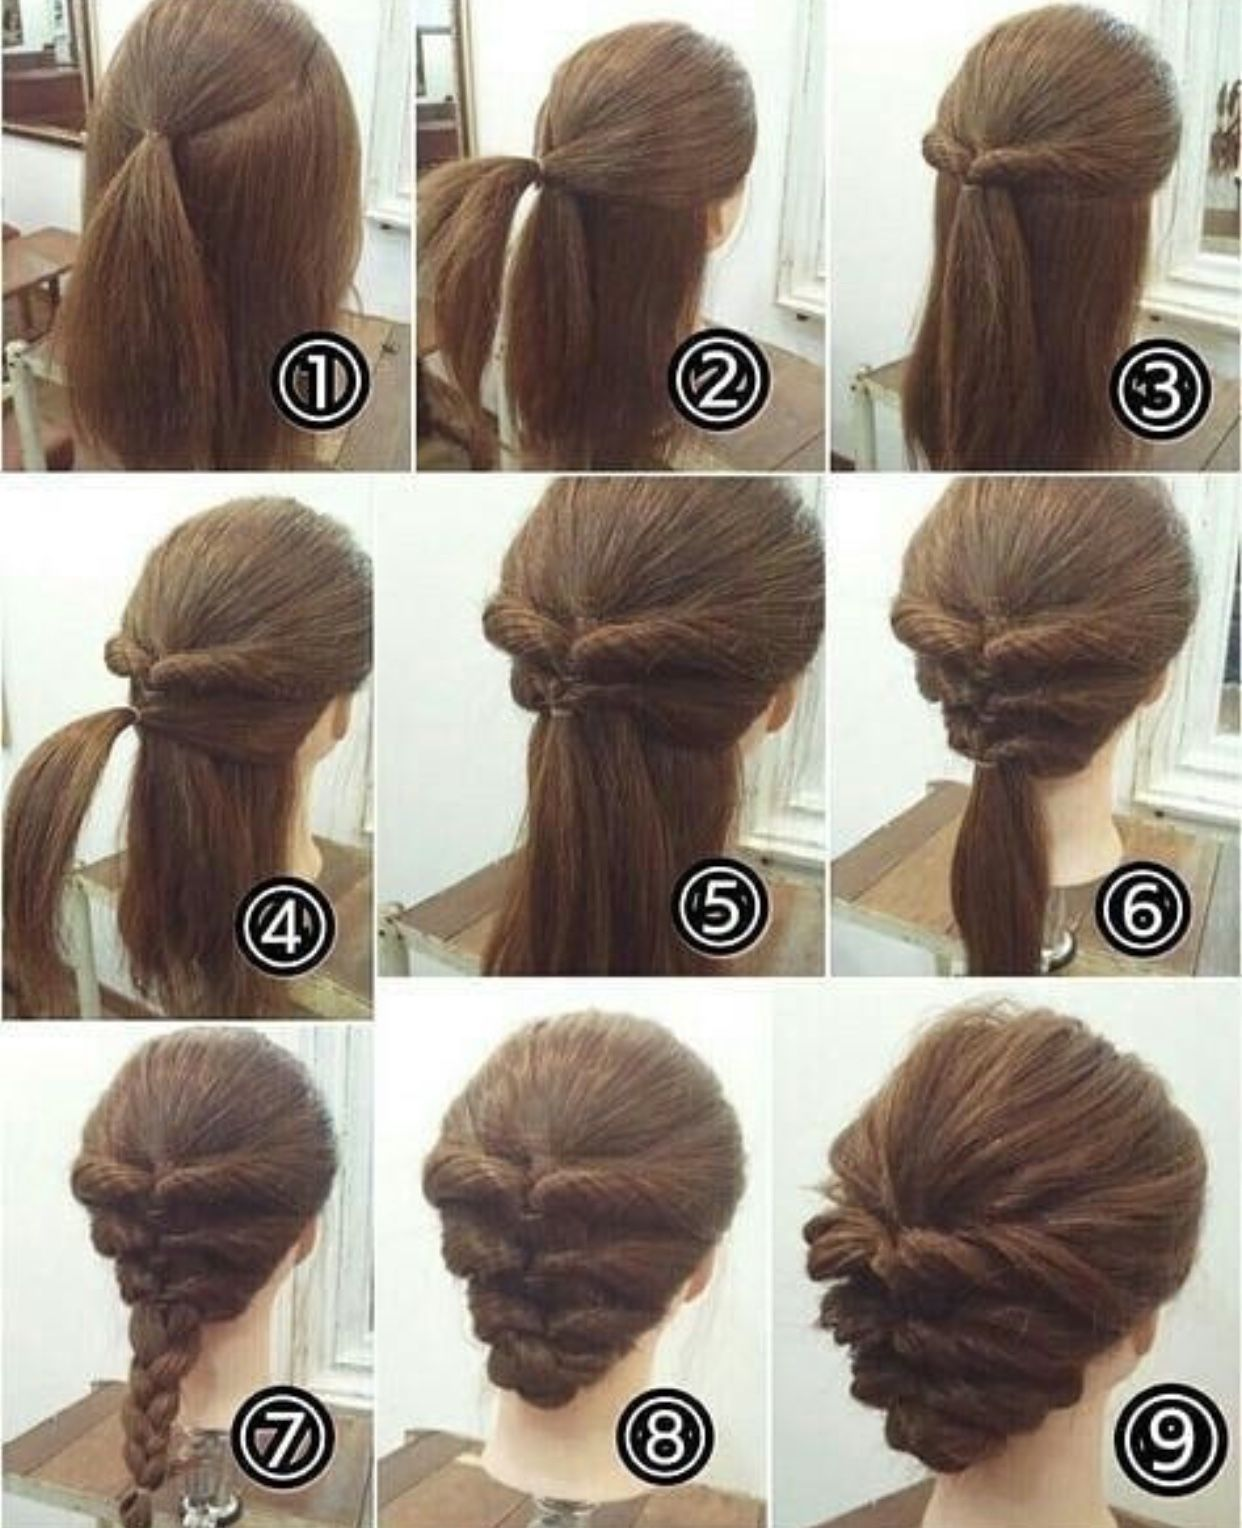 Pin On Hair Pictorial